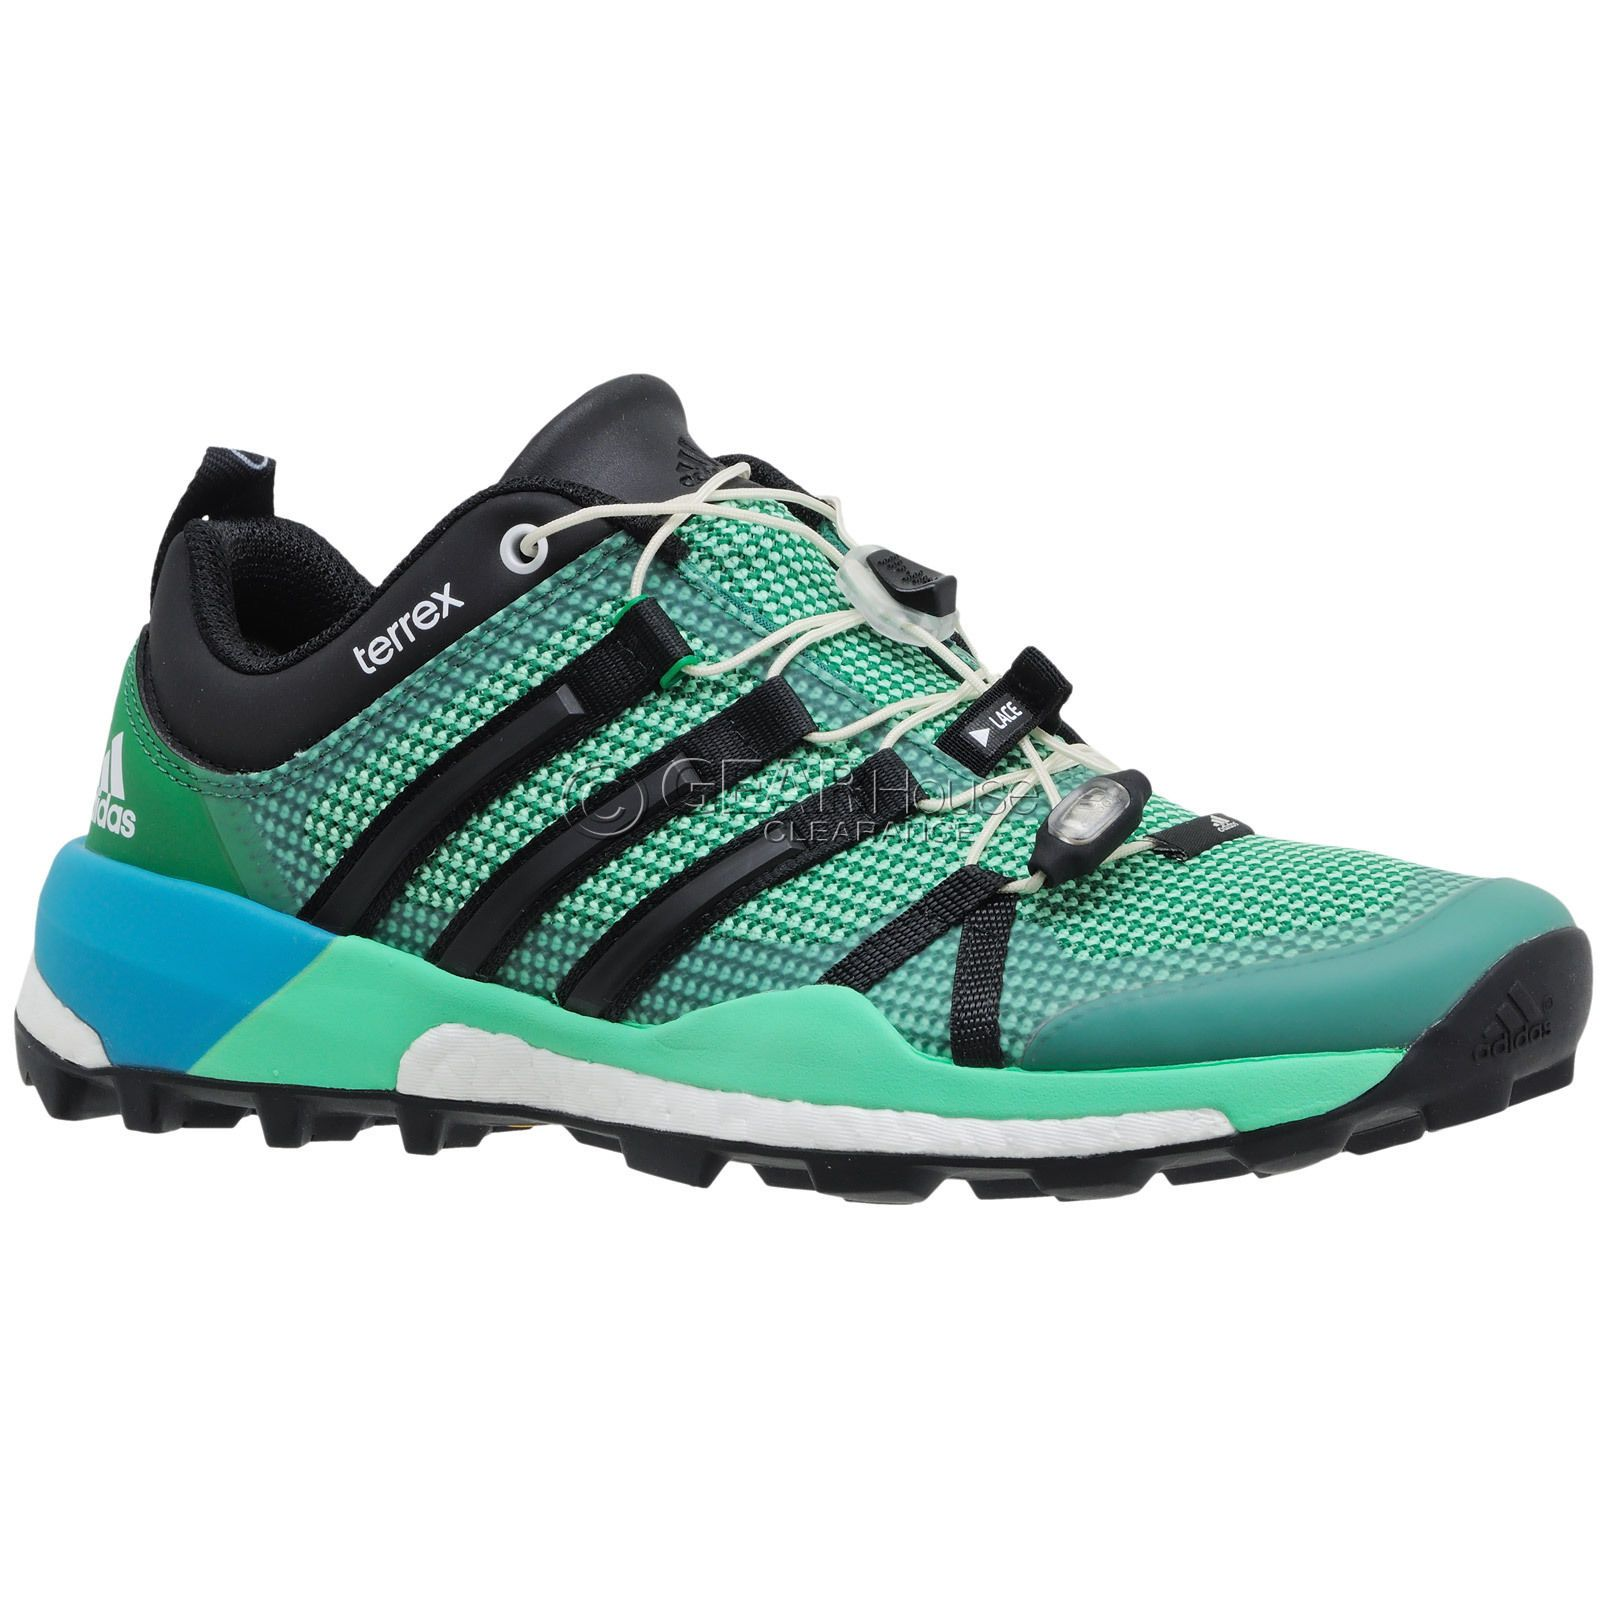 New Adidas Outdoor Terrex Skychaser Womens Trail Running Shoes Hiking Mint  Green